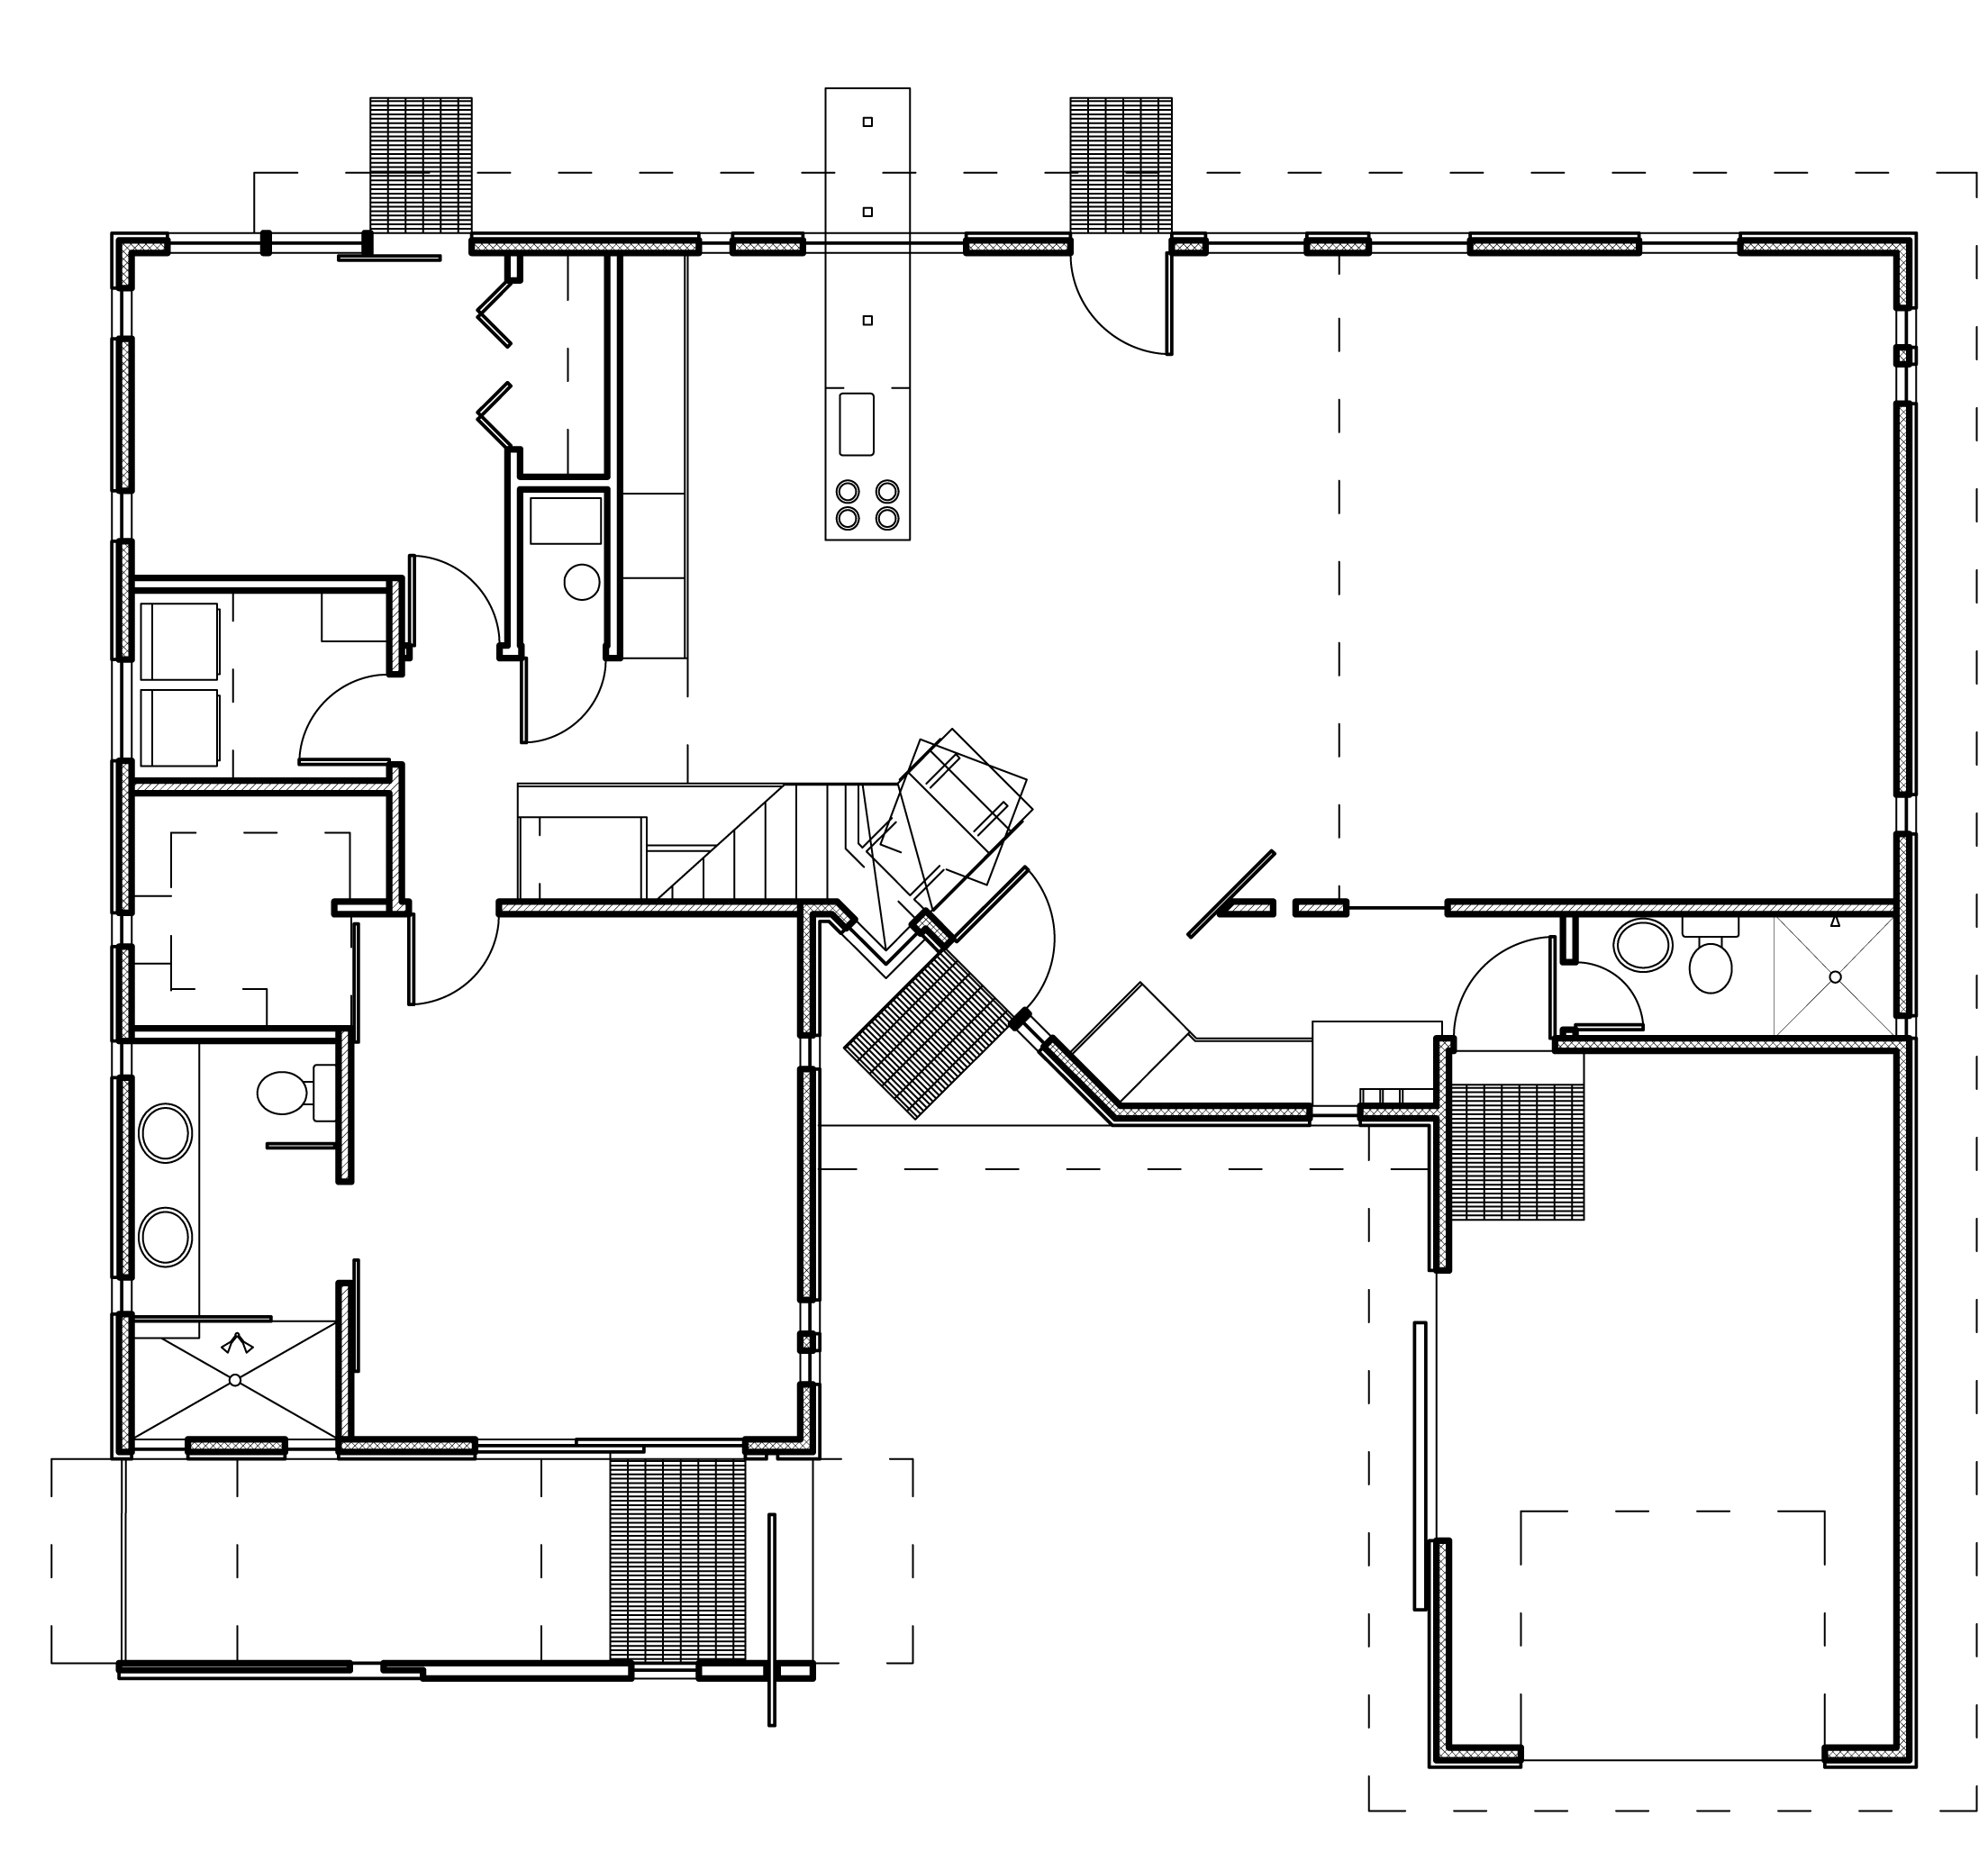 Modern house plans contemporary home designs floor plan 03 Floor plan of a modern house